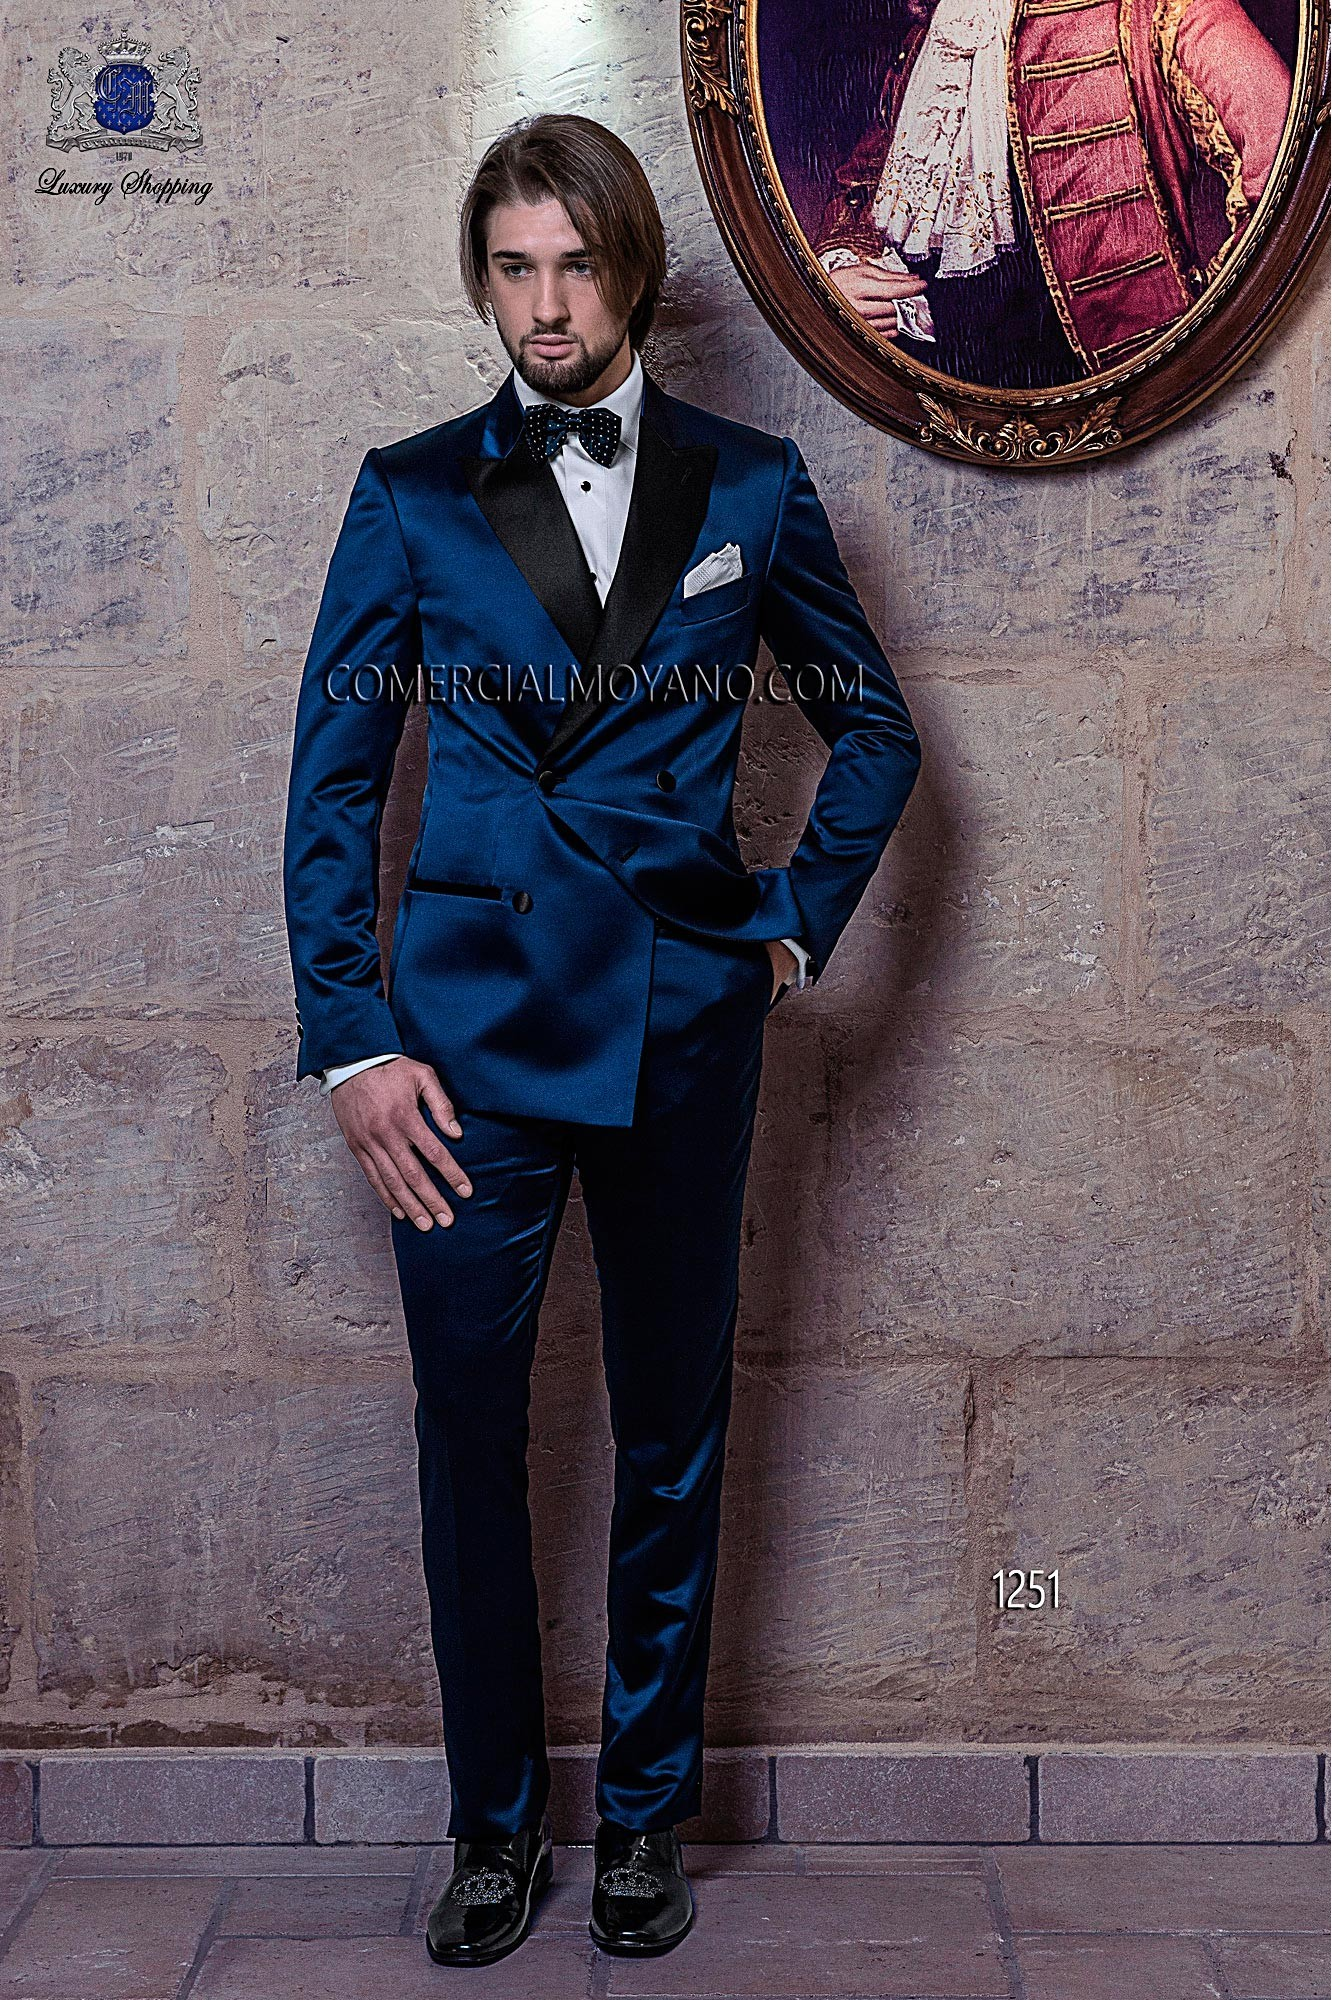 Black Tie Blue men wedding suit model 1251 Ottavio Nuccio Gala